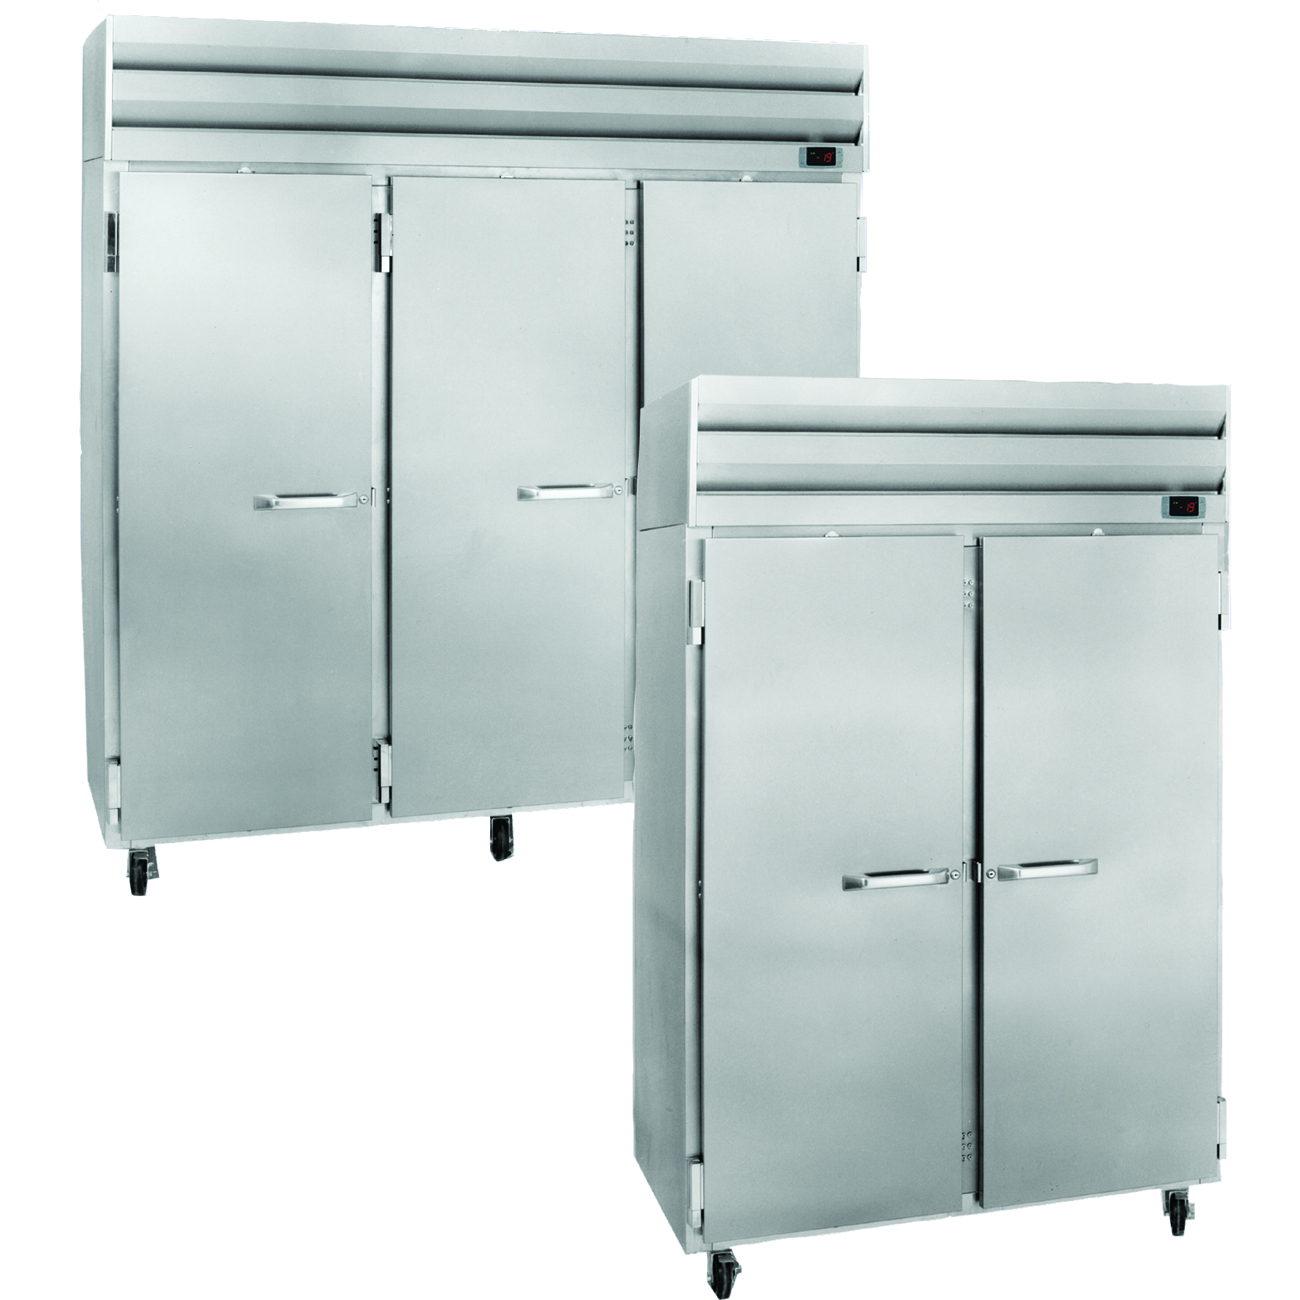 Howard-McCray SR75-P refrigerator, reach-in